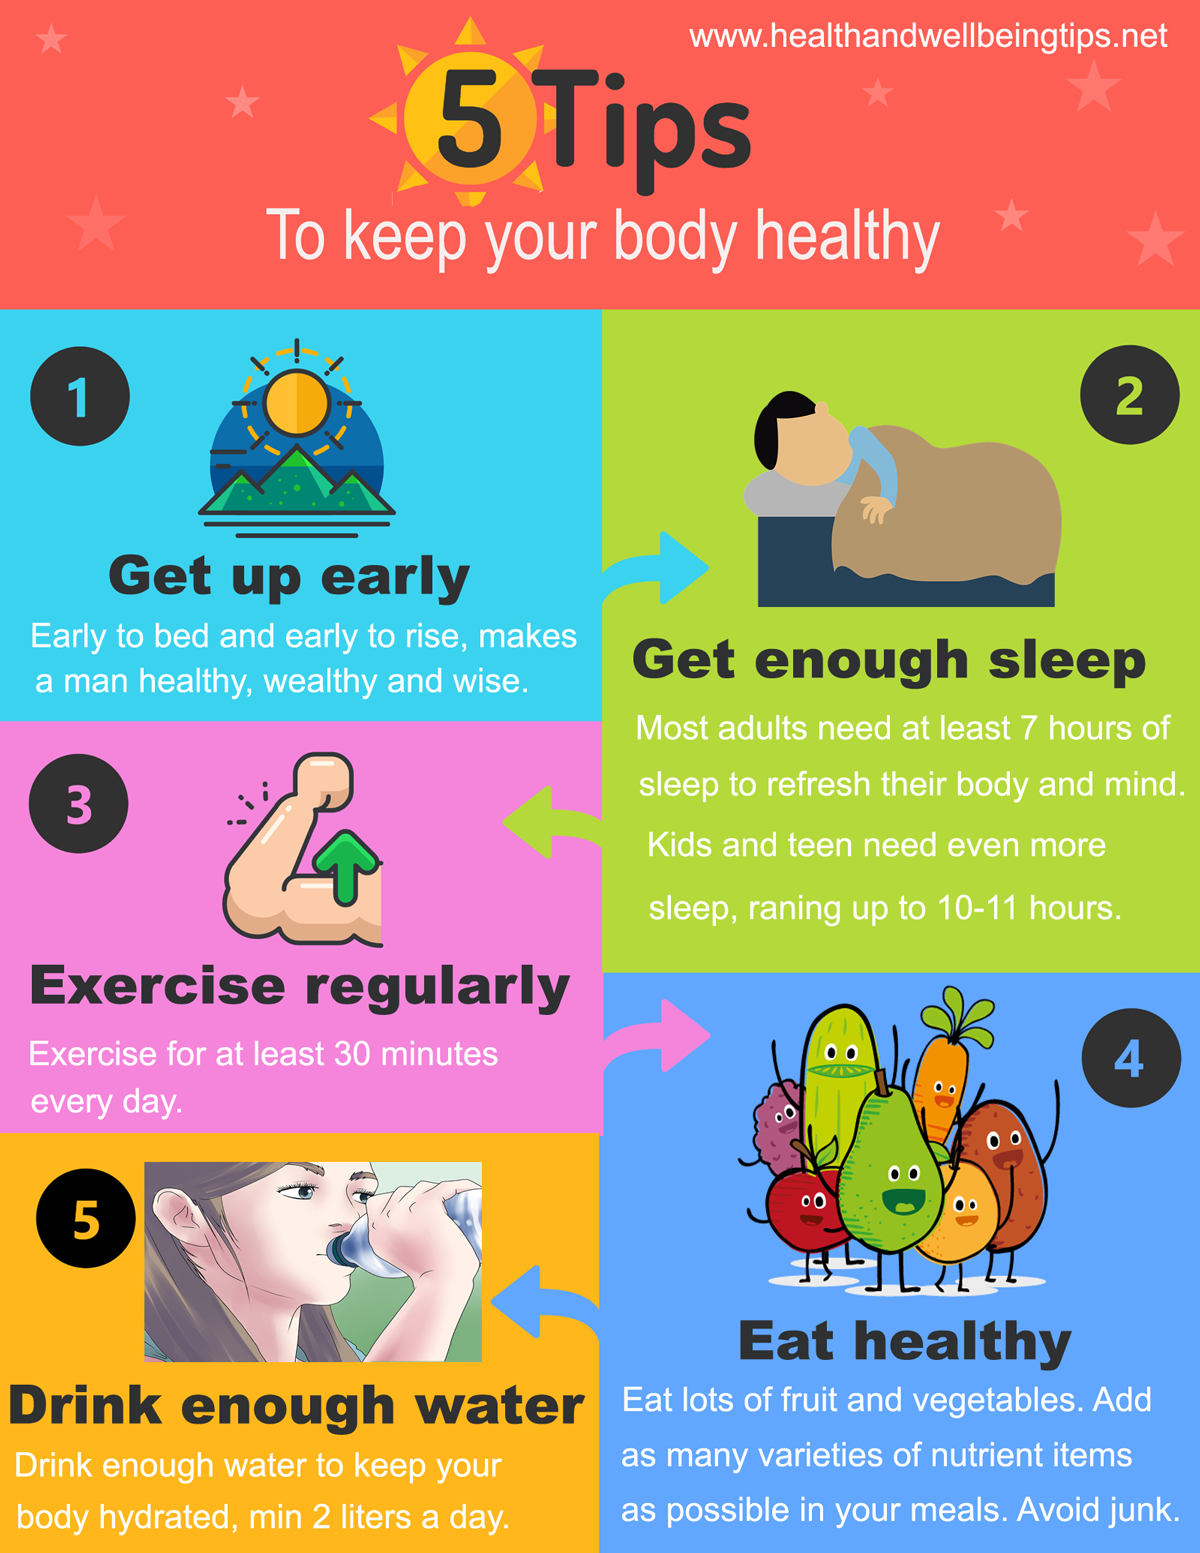 5 Tips to keep your body healthy | How to stay healthy, Healthy ...